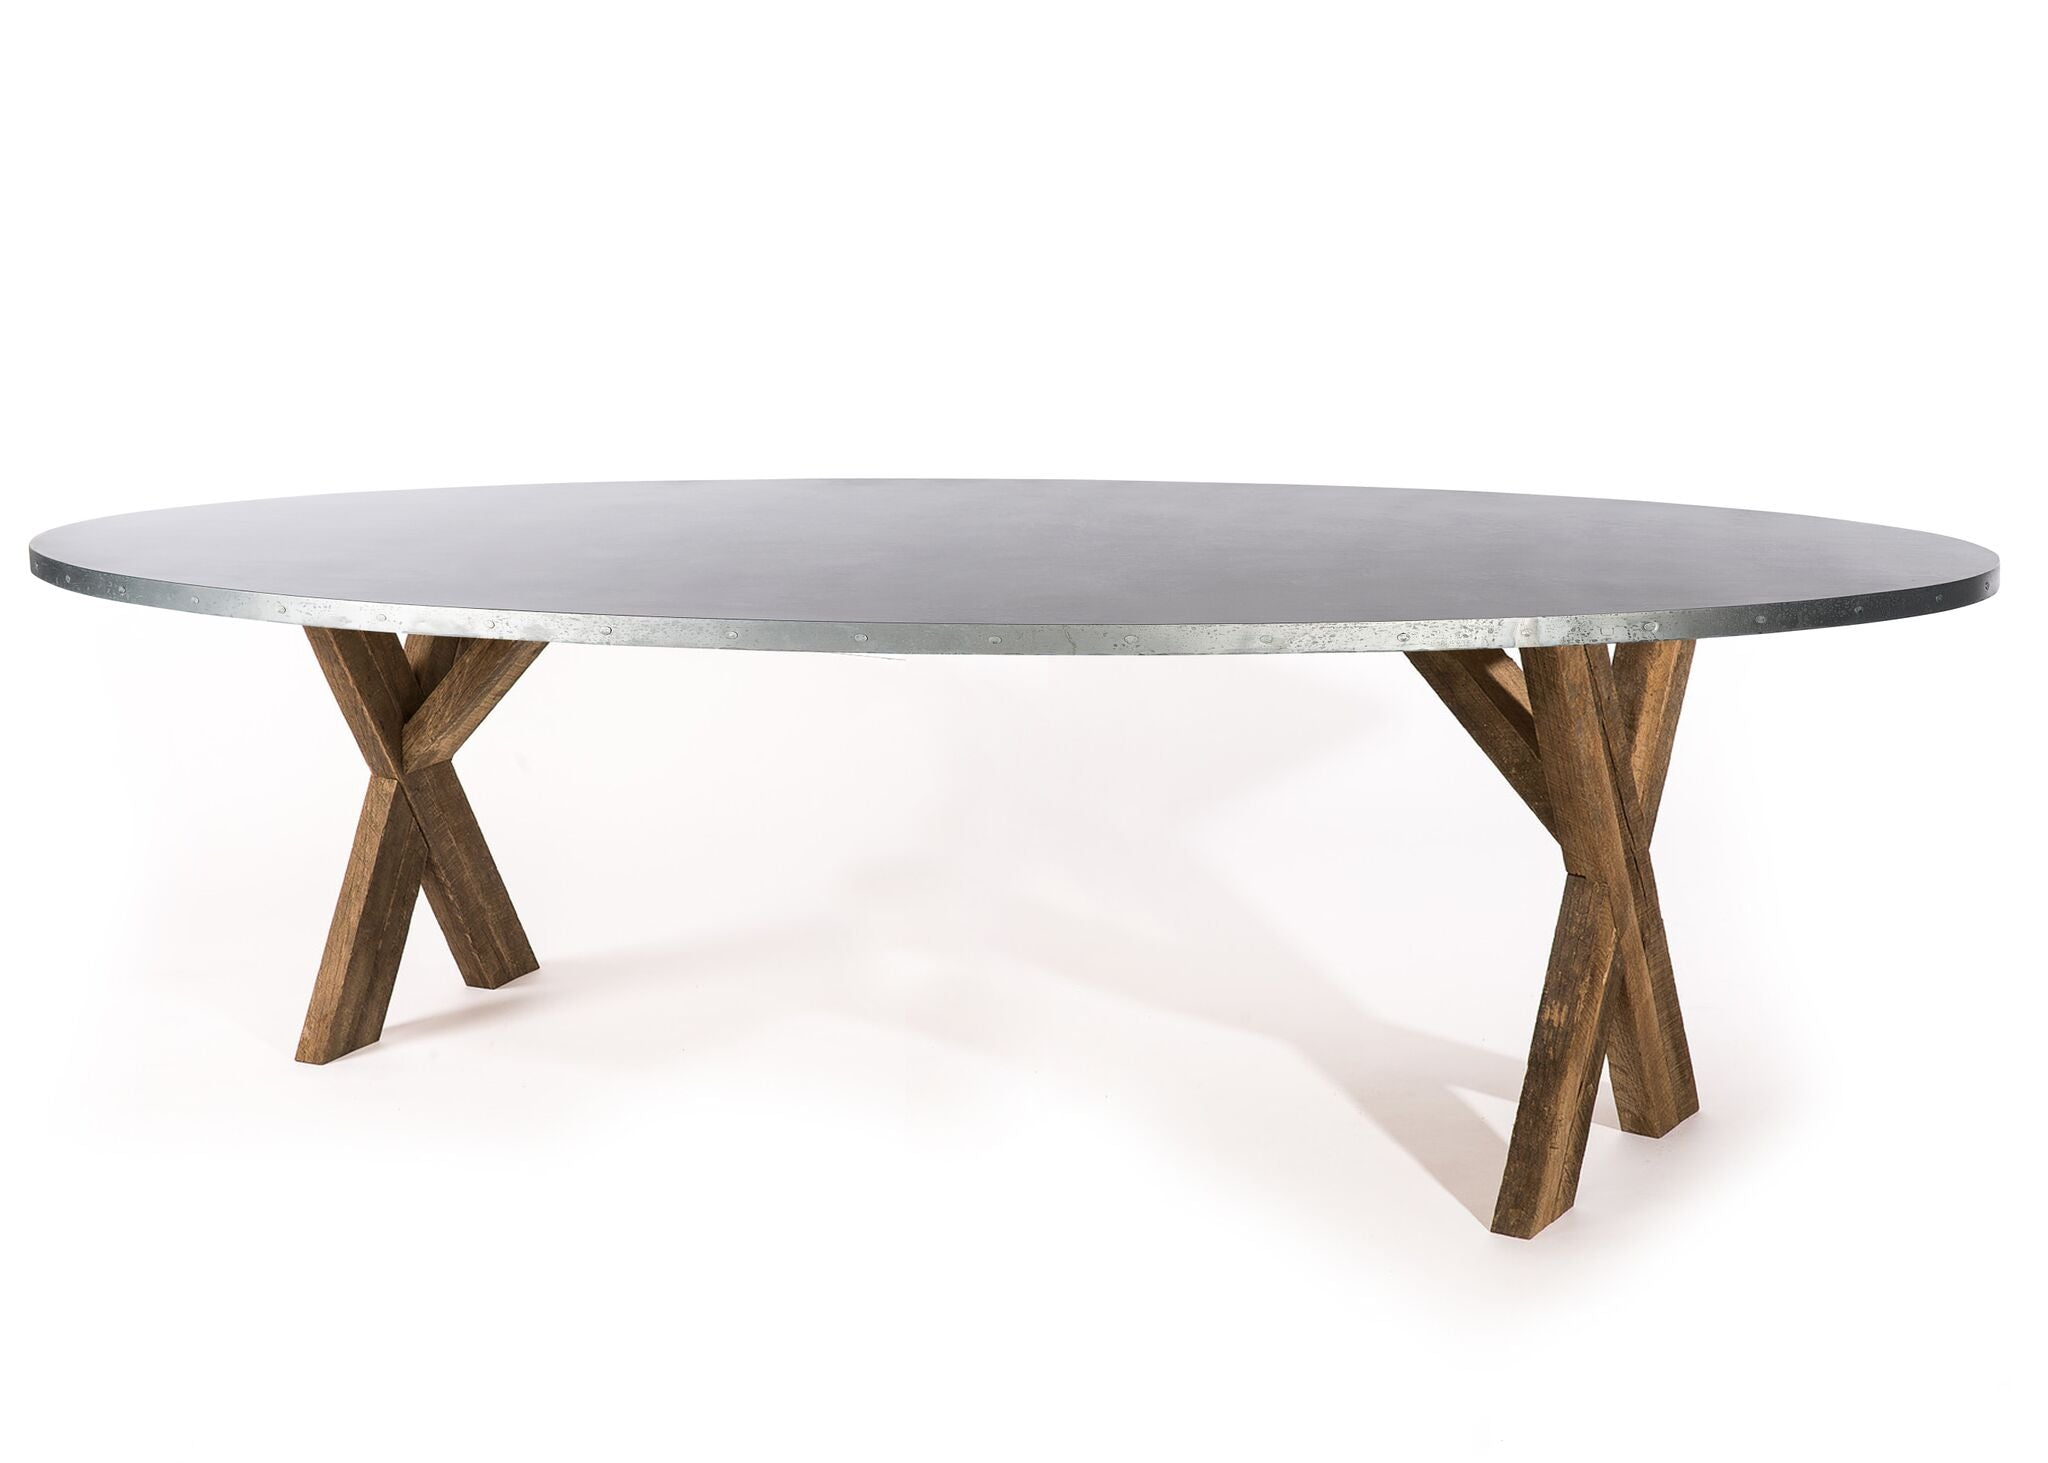 X Base Trestle Table